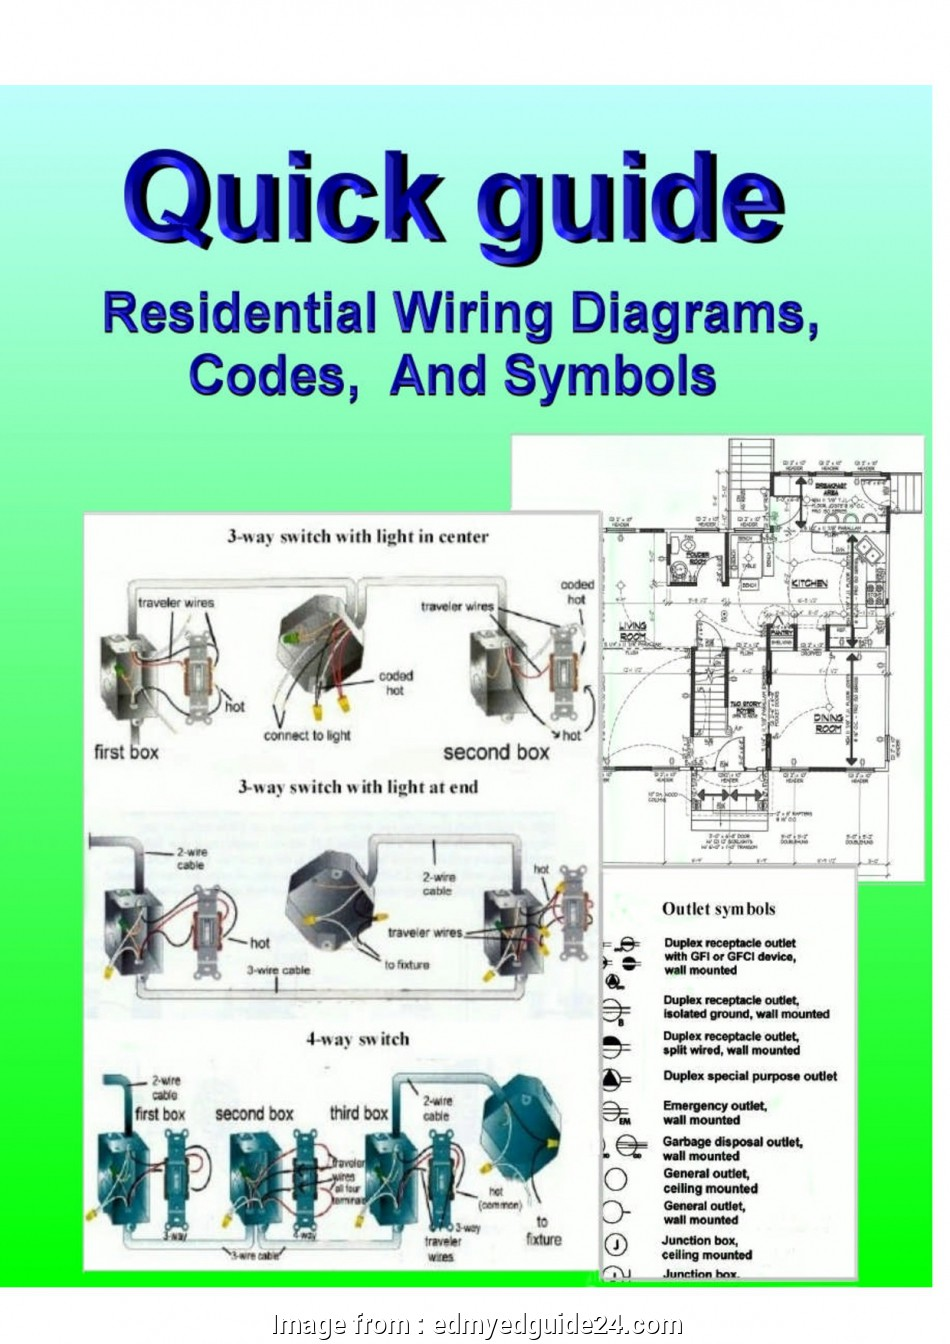 wiring diagrams book wiring diagram all data Electric Generator Diagrams 9 creative home electrical wiring book download photos tone tastic 2007 mazda 3 wiring diagrams book